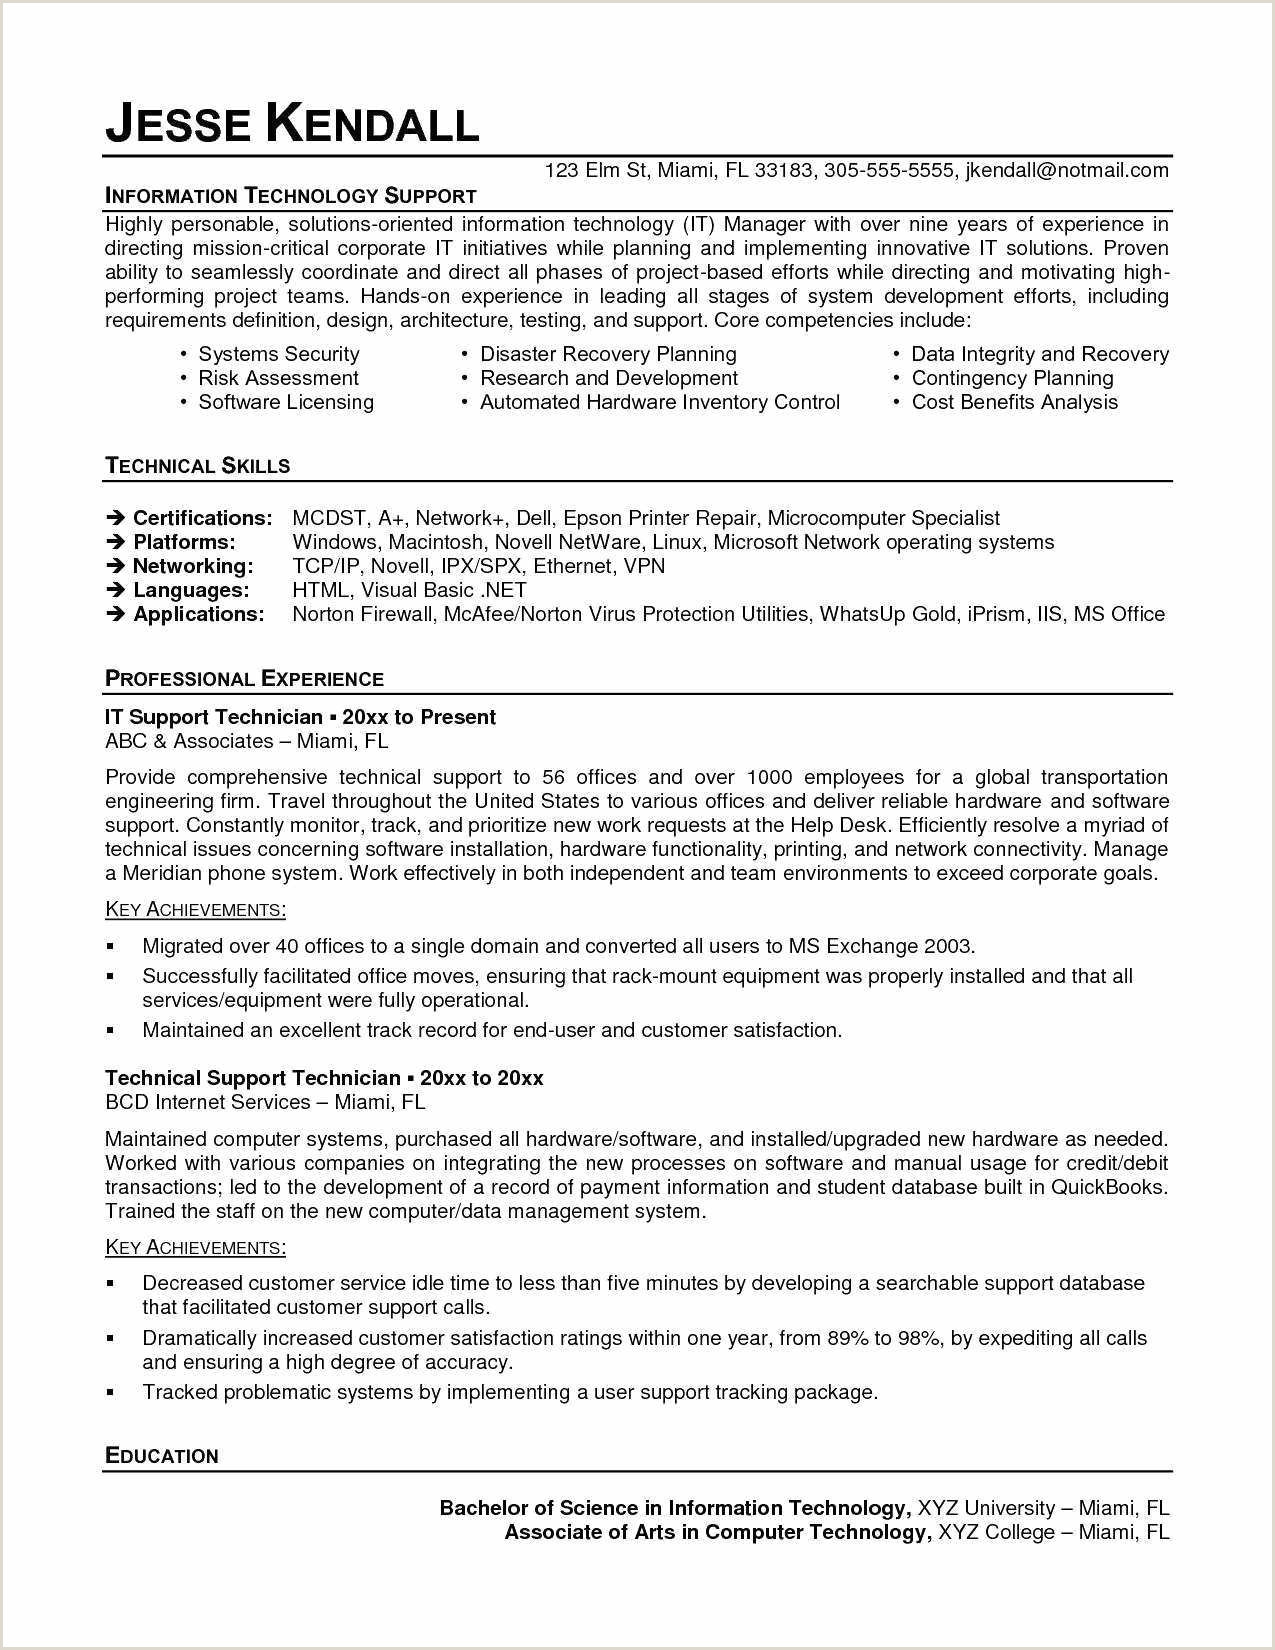 Objectives for Freshers Puter Engineering Objective Resume New Resume format for